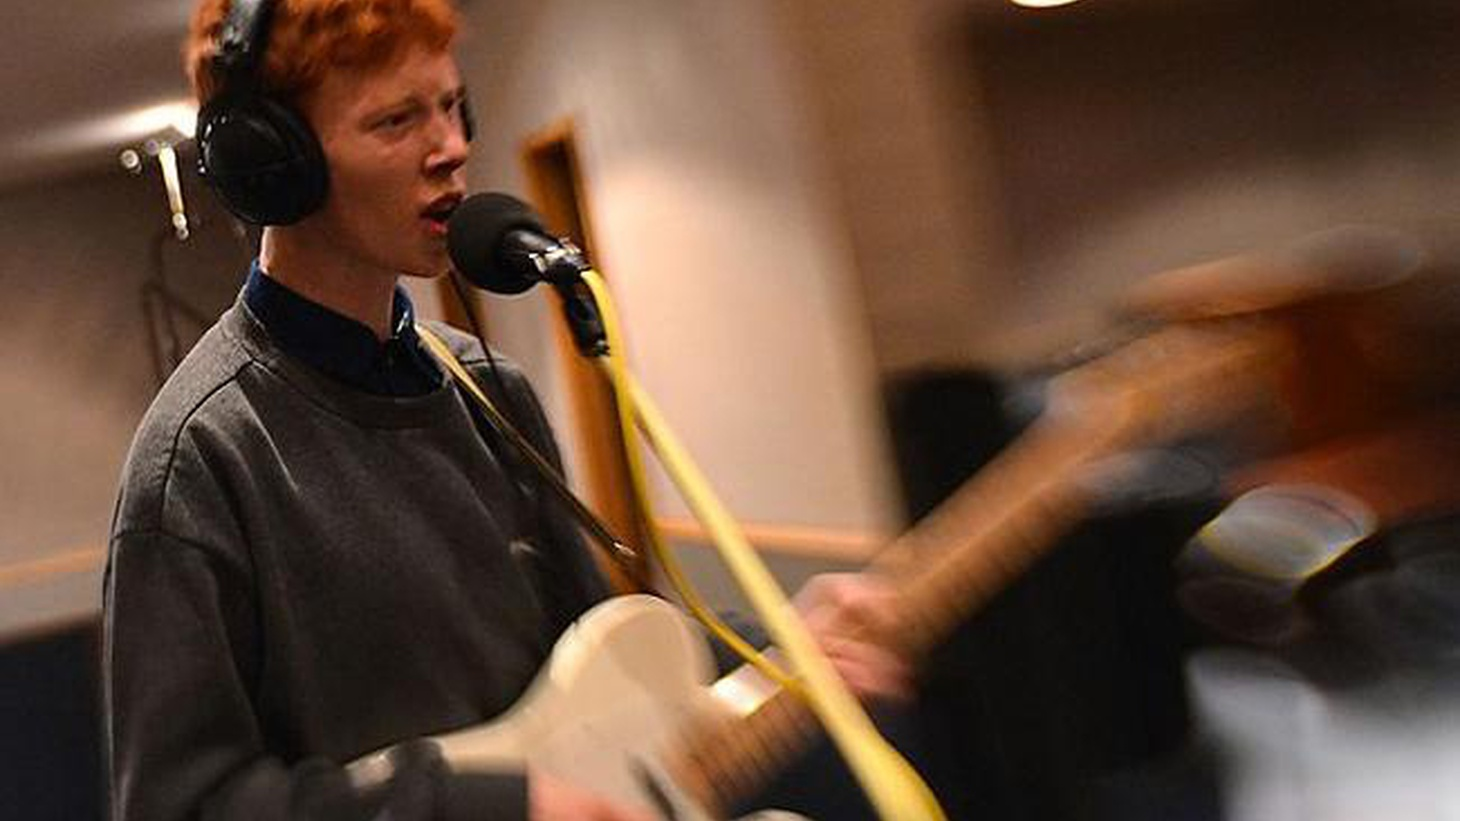 A favorite among KCRW DJ's, young Londoner Archy Marshall - best known as King Krule - is a captivating new artist who harnesses his deep baritone into alluring lyrics.